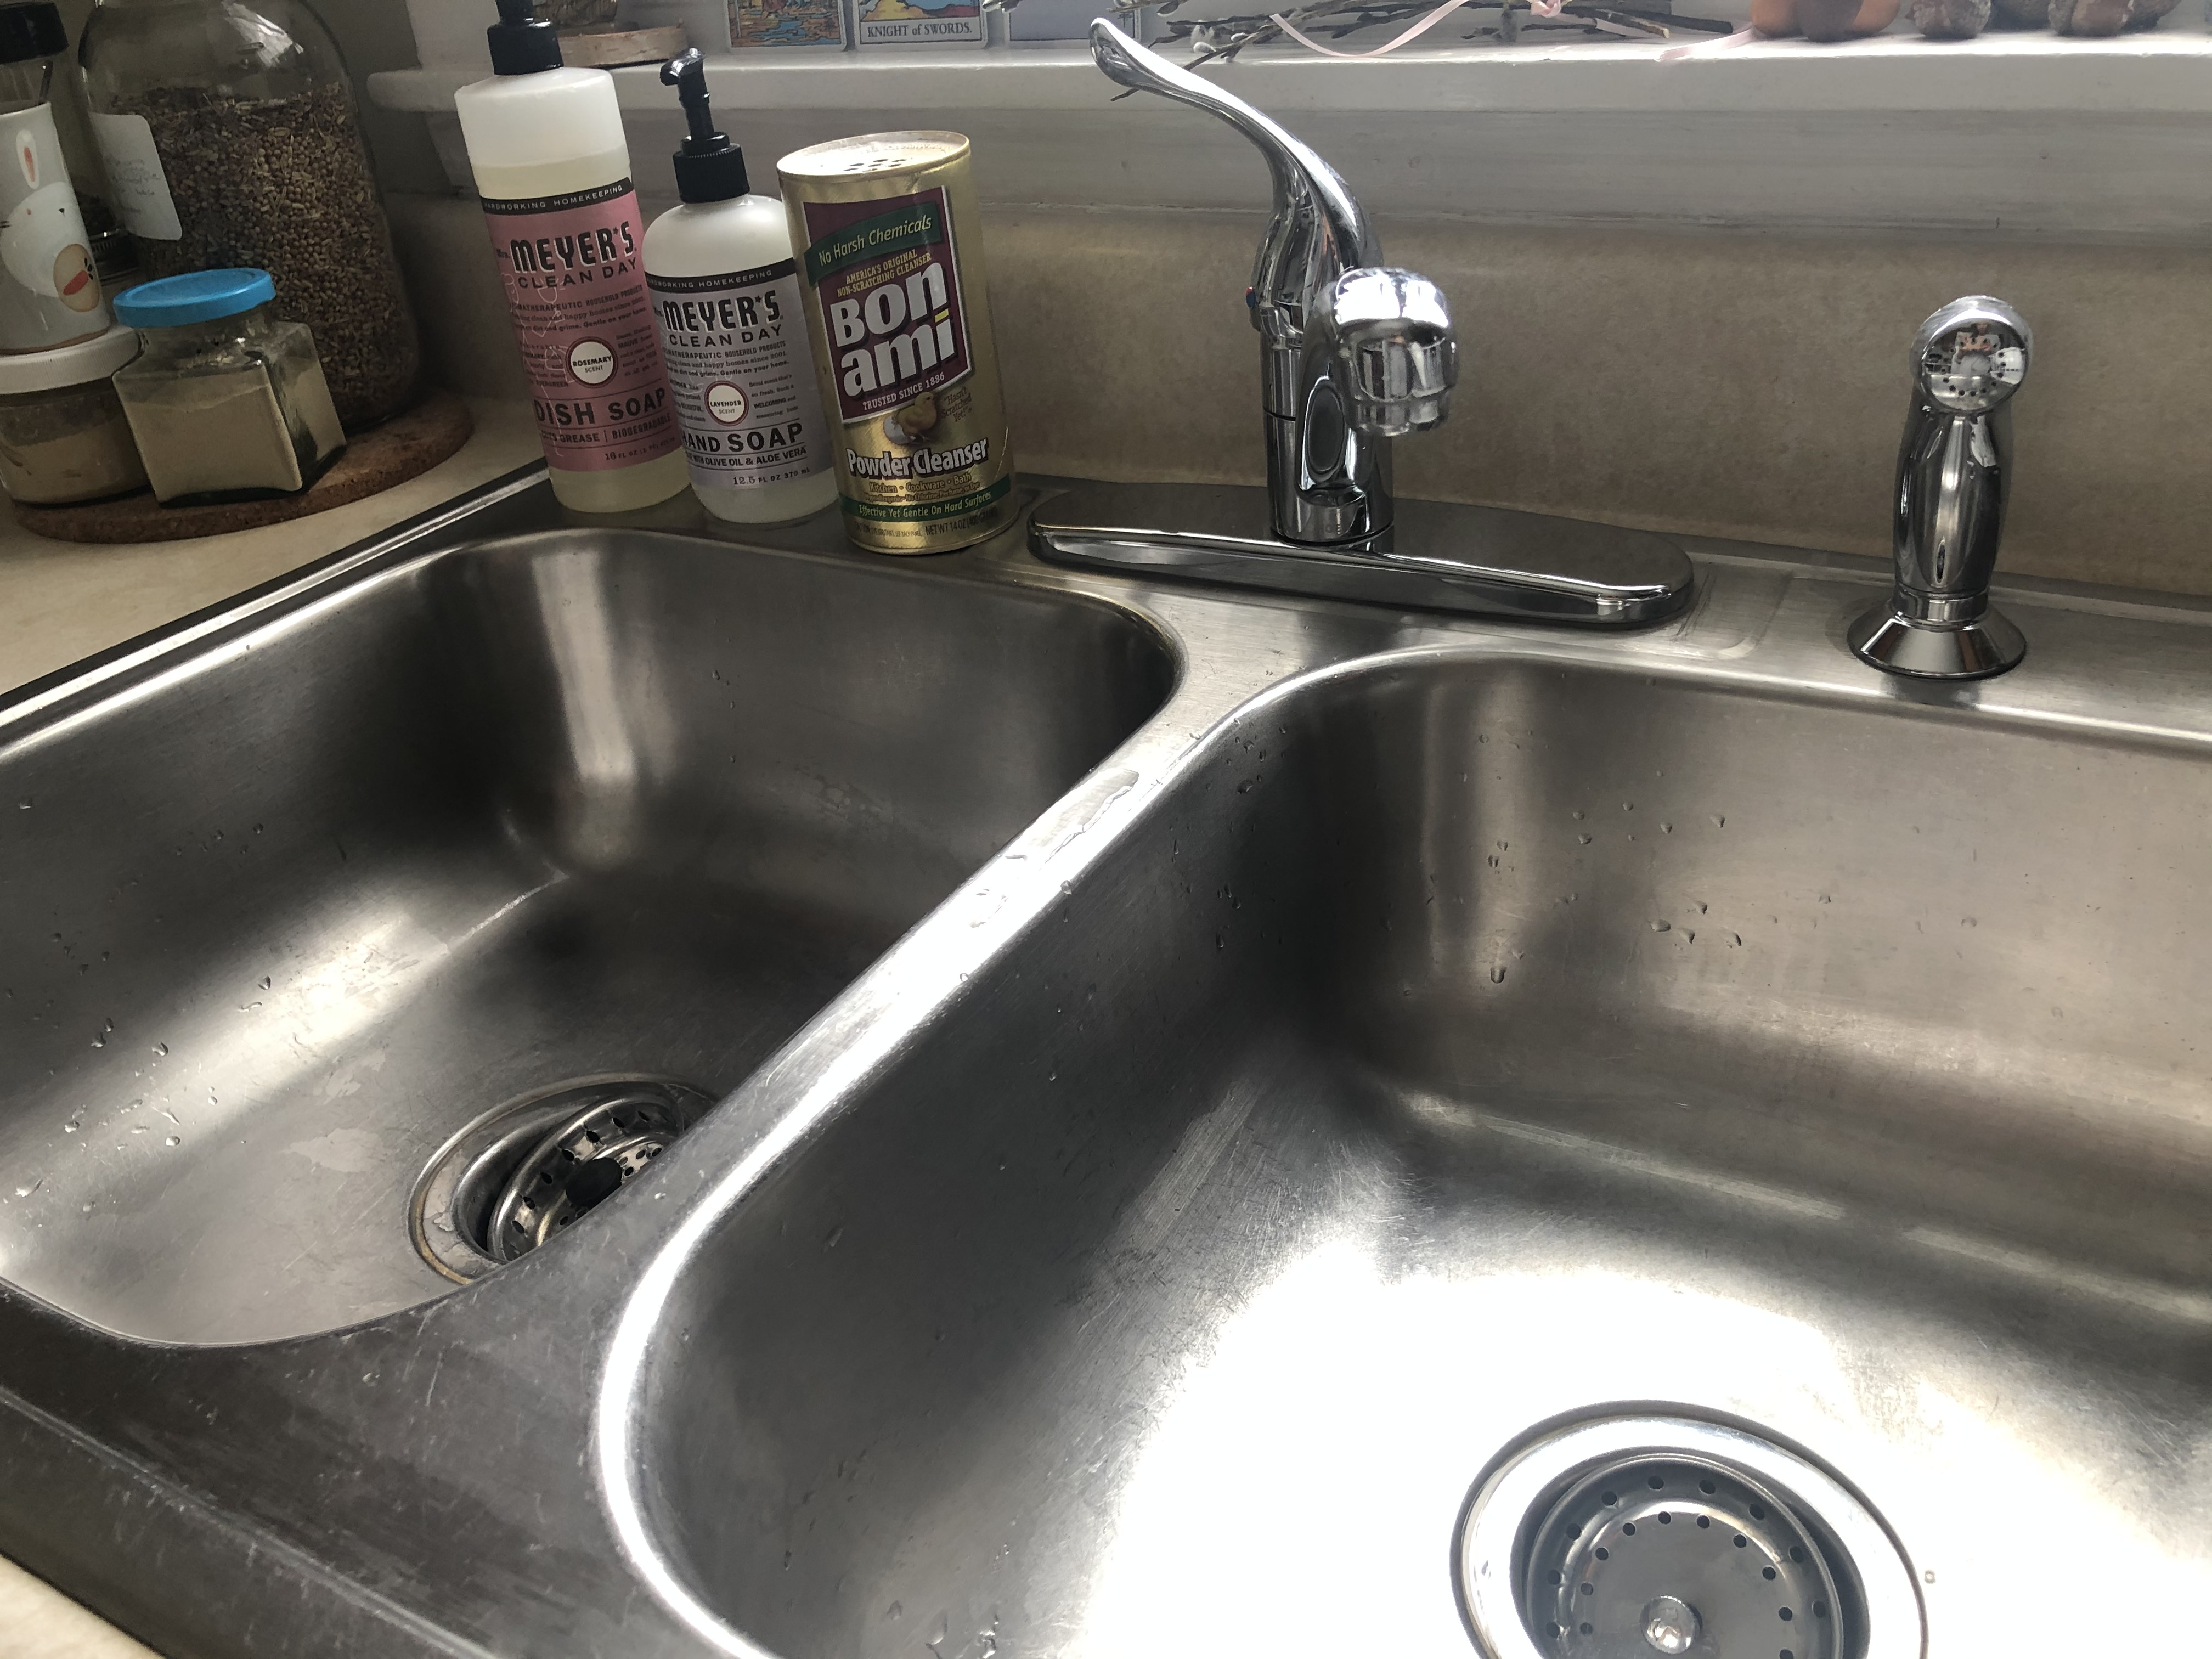 Best Stainless Steel Cleaner Bon Ami Review Kitchn